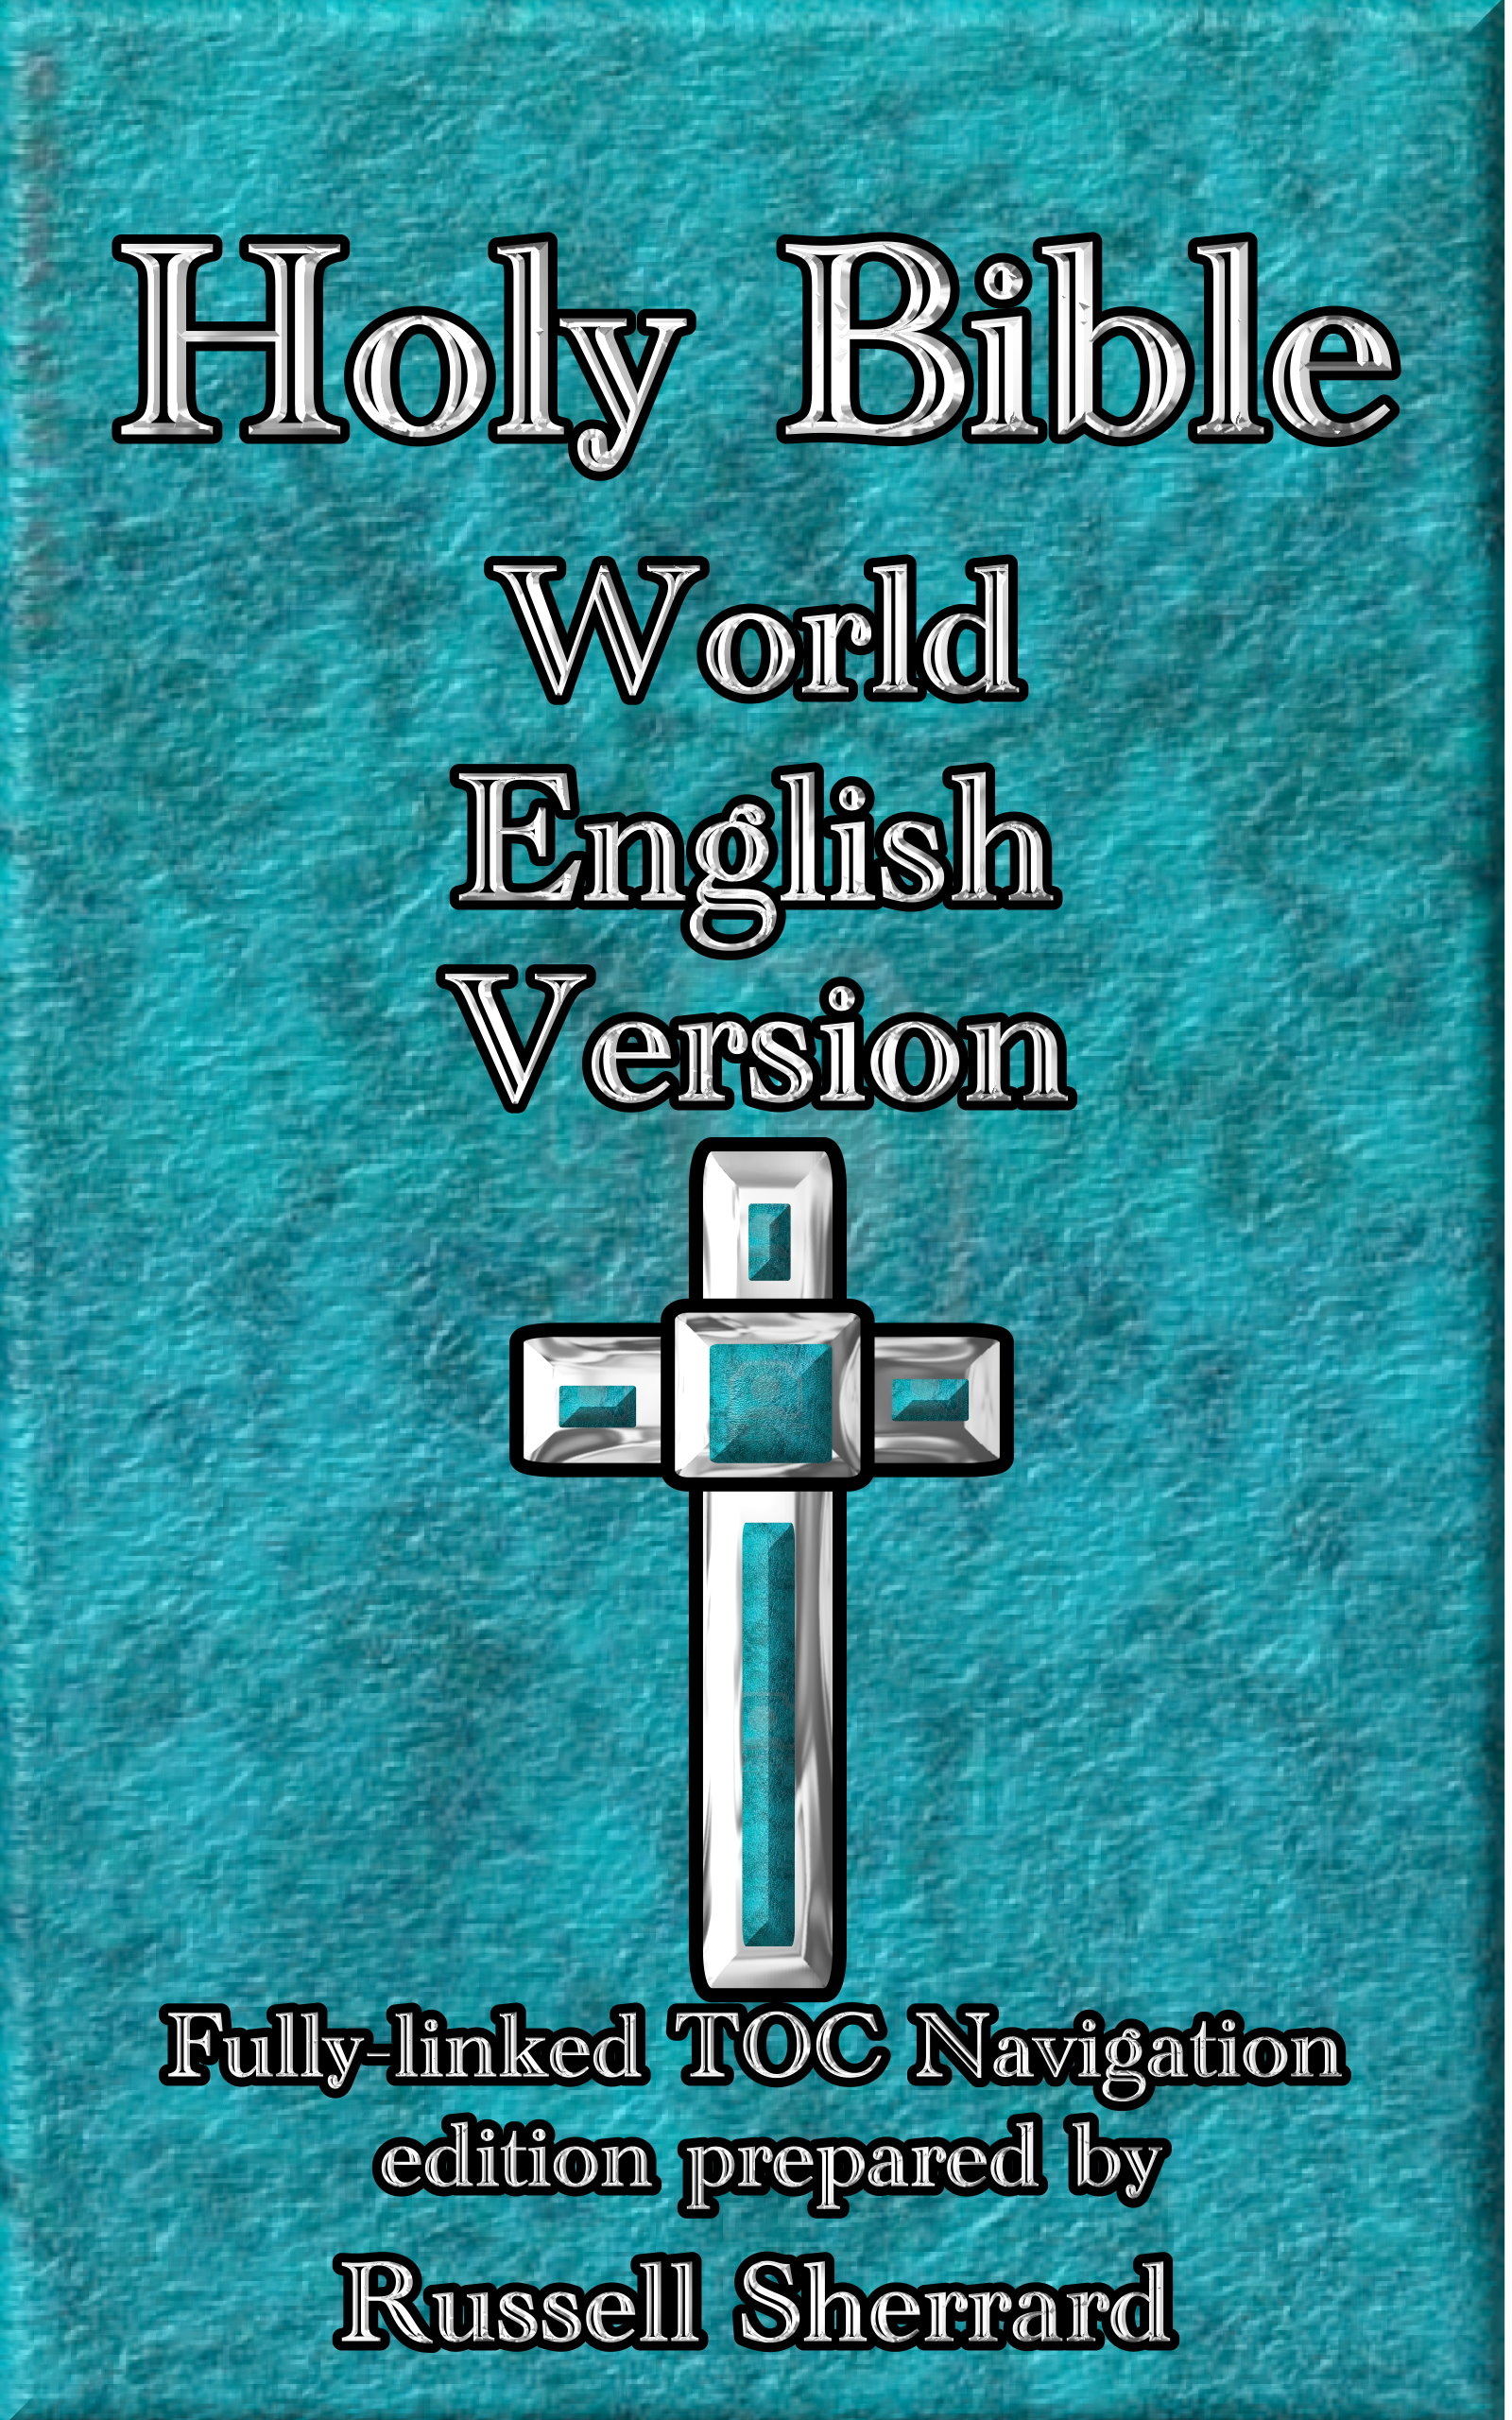 Holy Bible - World English Version By: Russell Sherrard